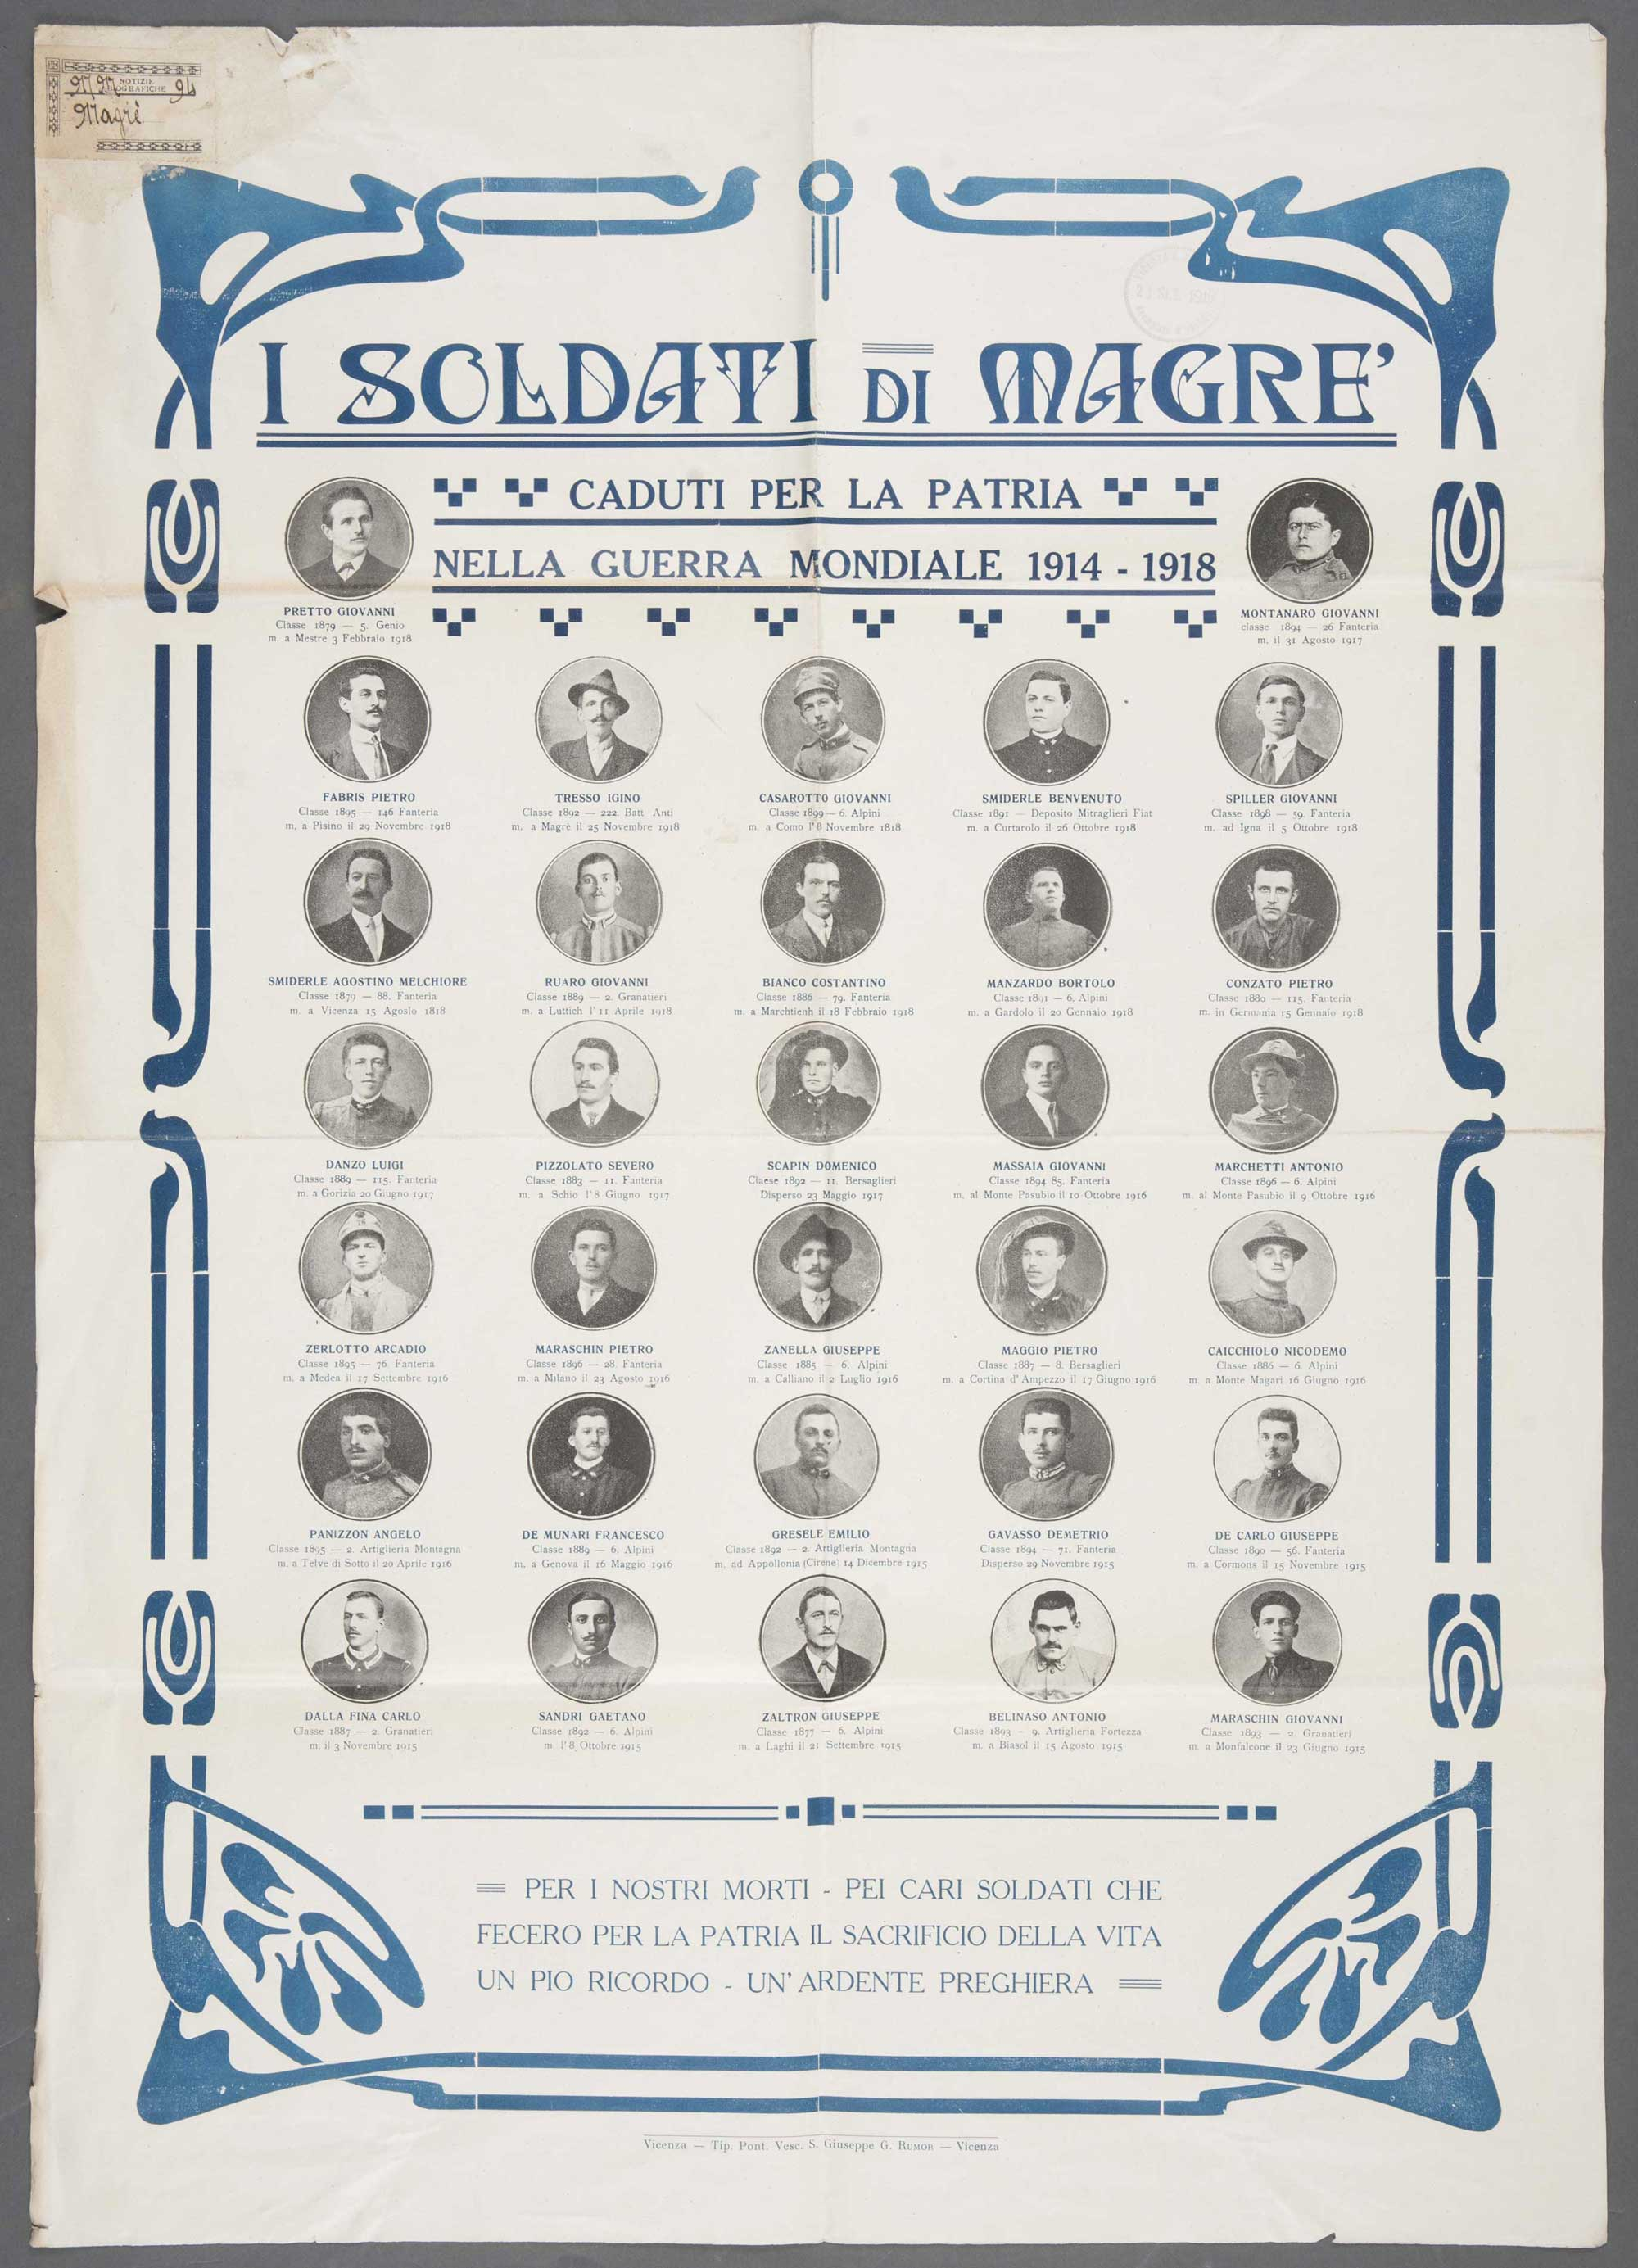 Soldiers of the Magre who fell for their country in the world war 1914-1918